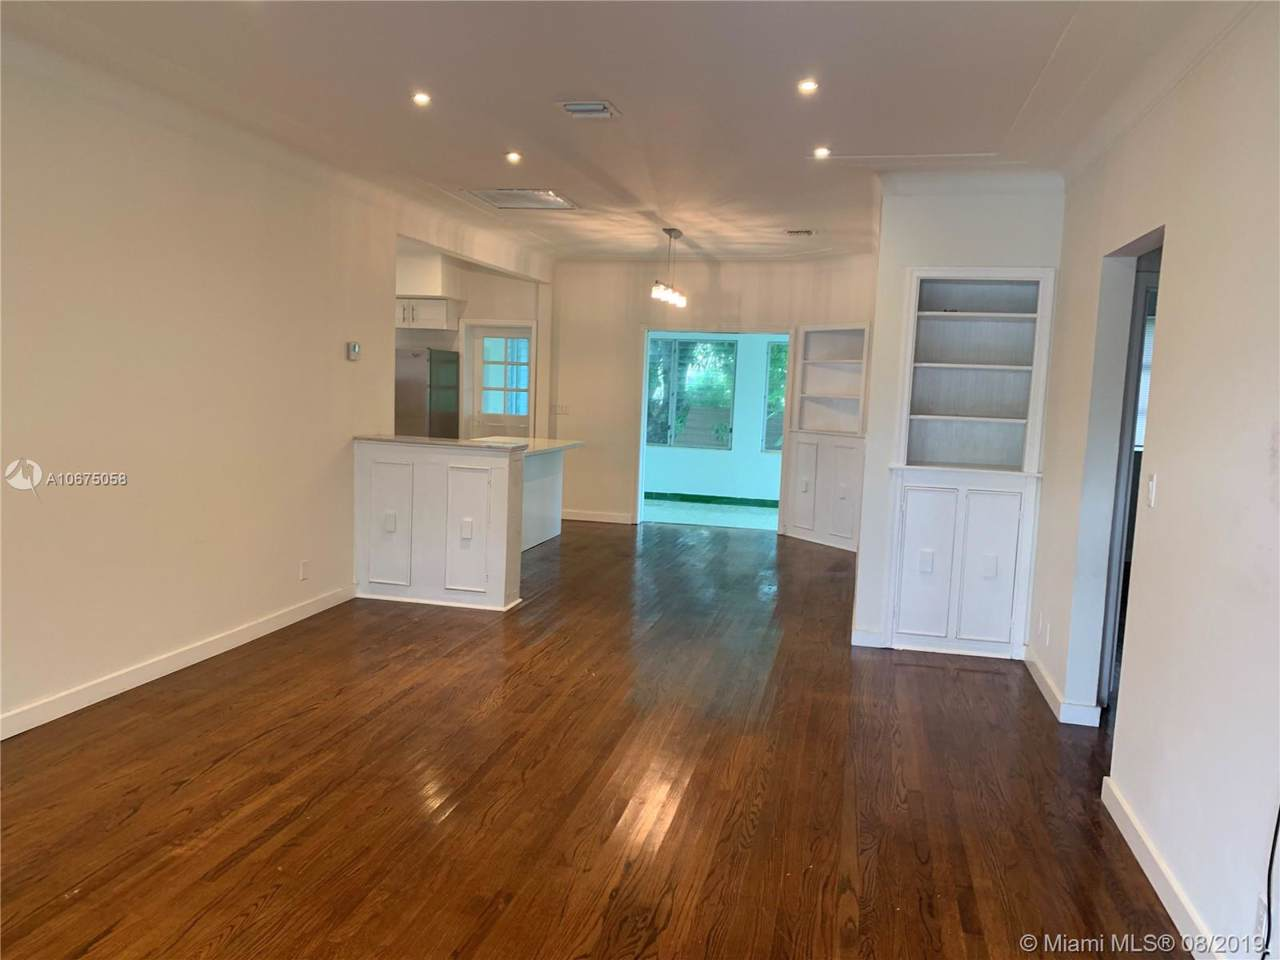 9381 Carlyle Ave - Photo 1